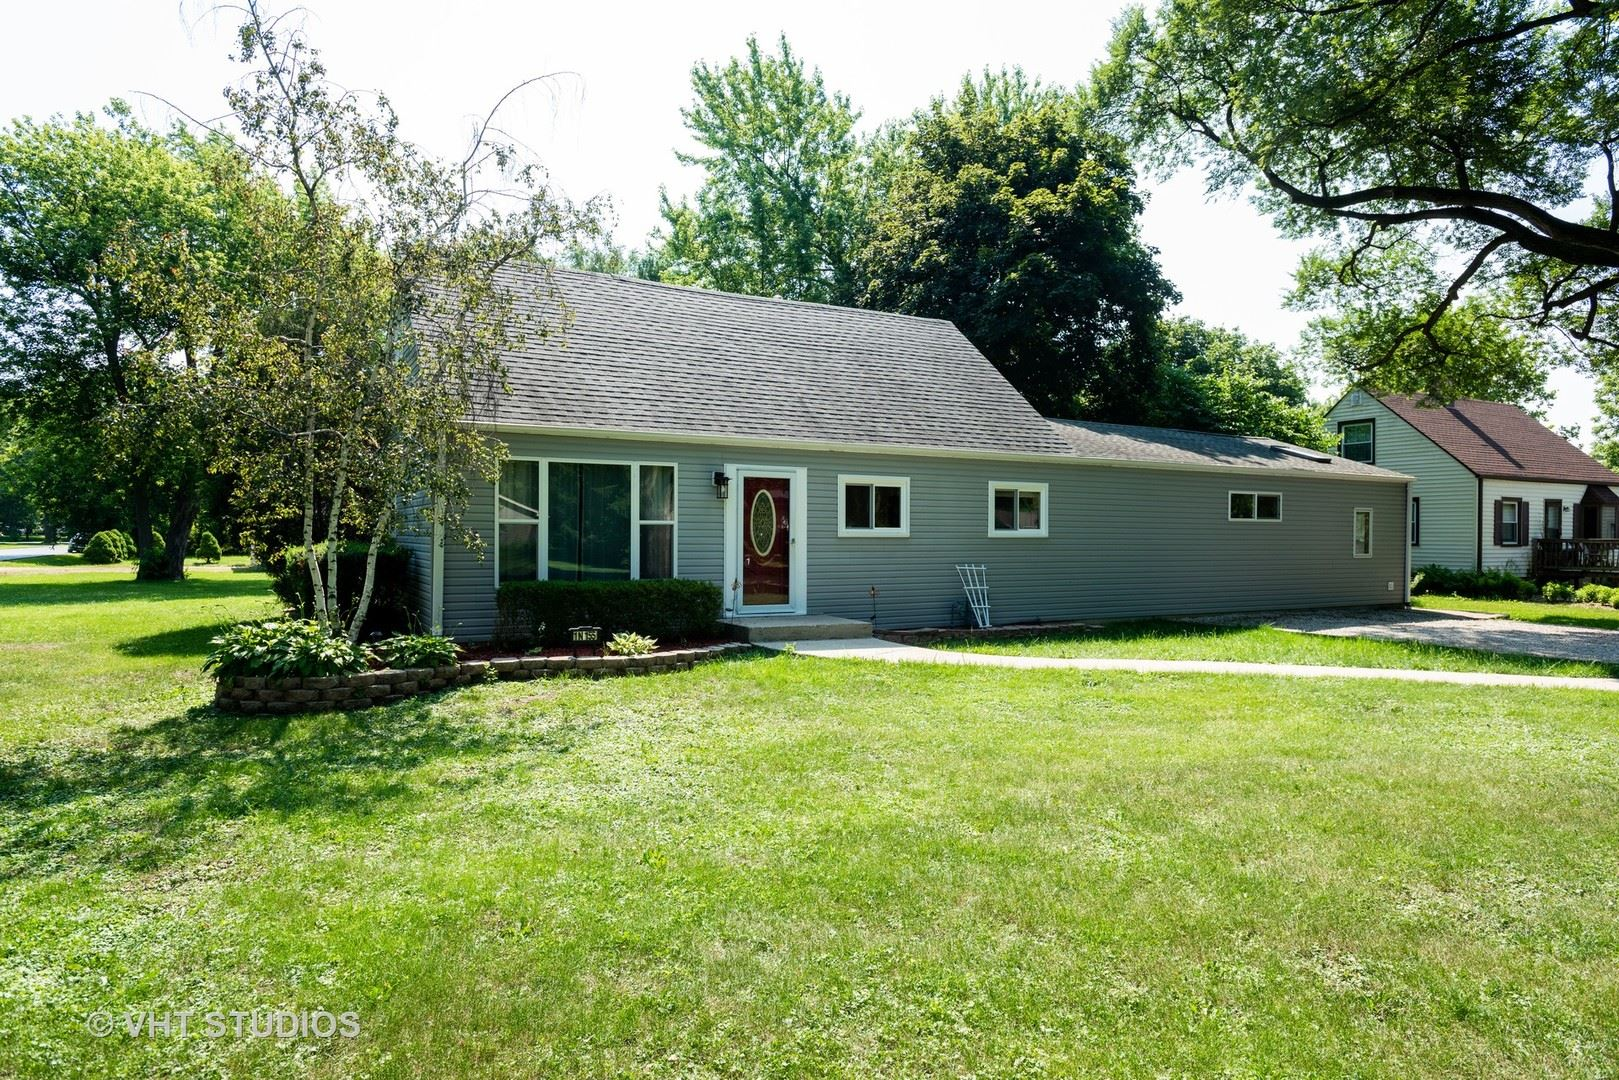 1N155 WOODS Avenue, Carol Stream, IL 60188 - #: 10773678